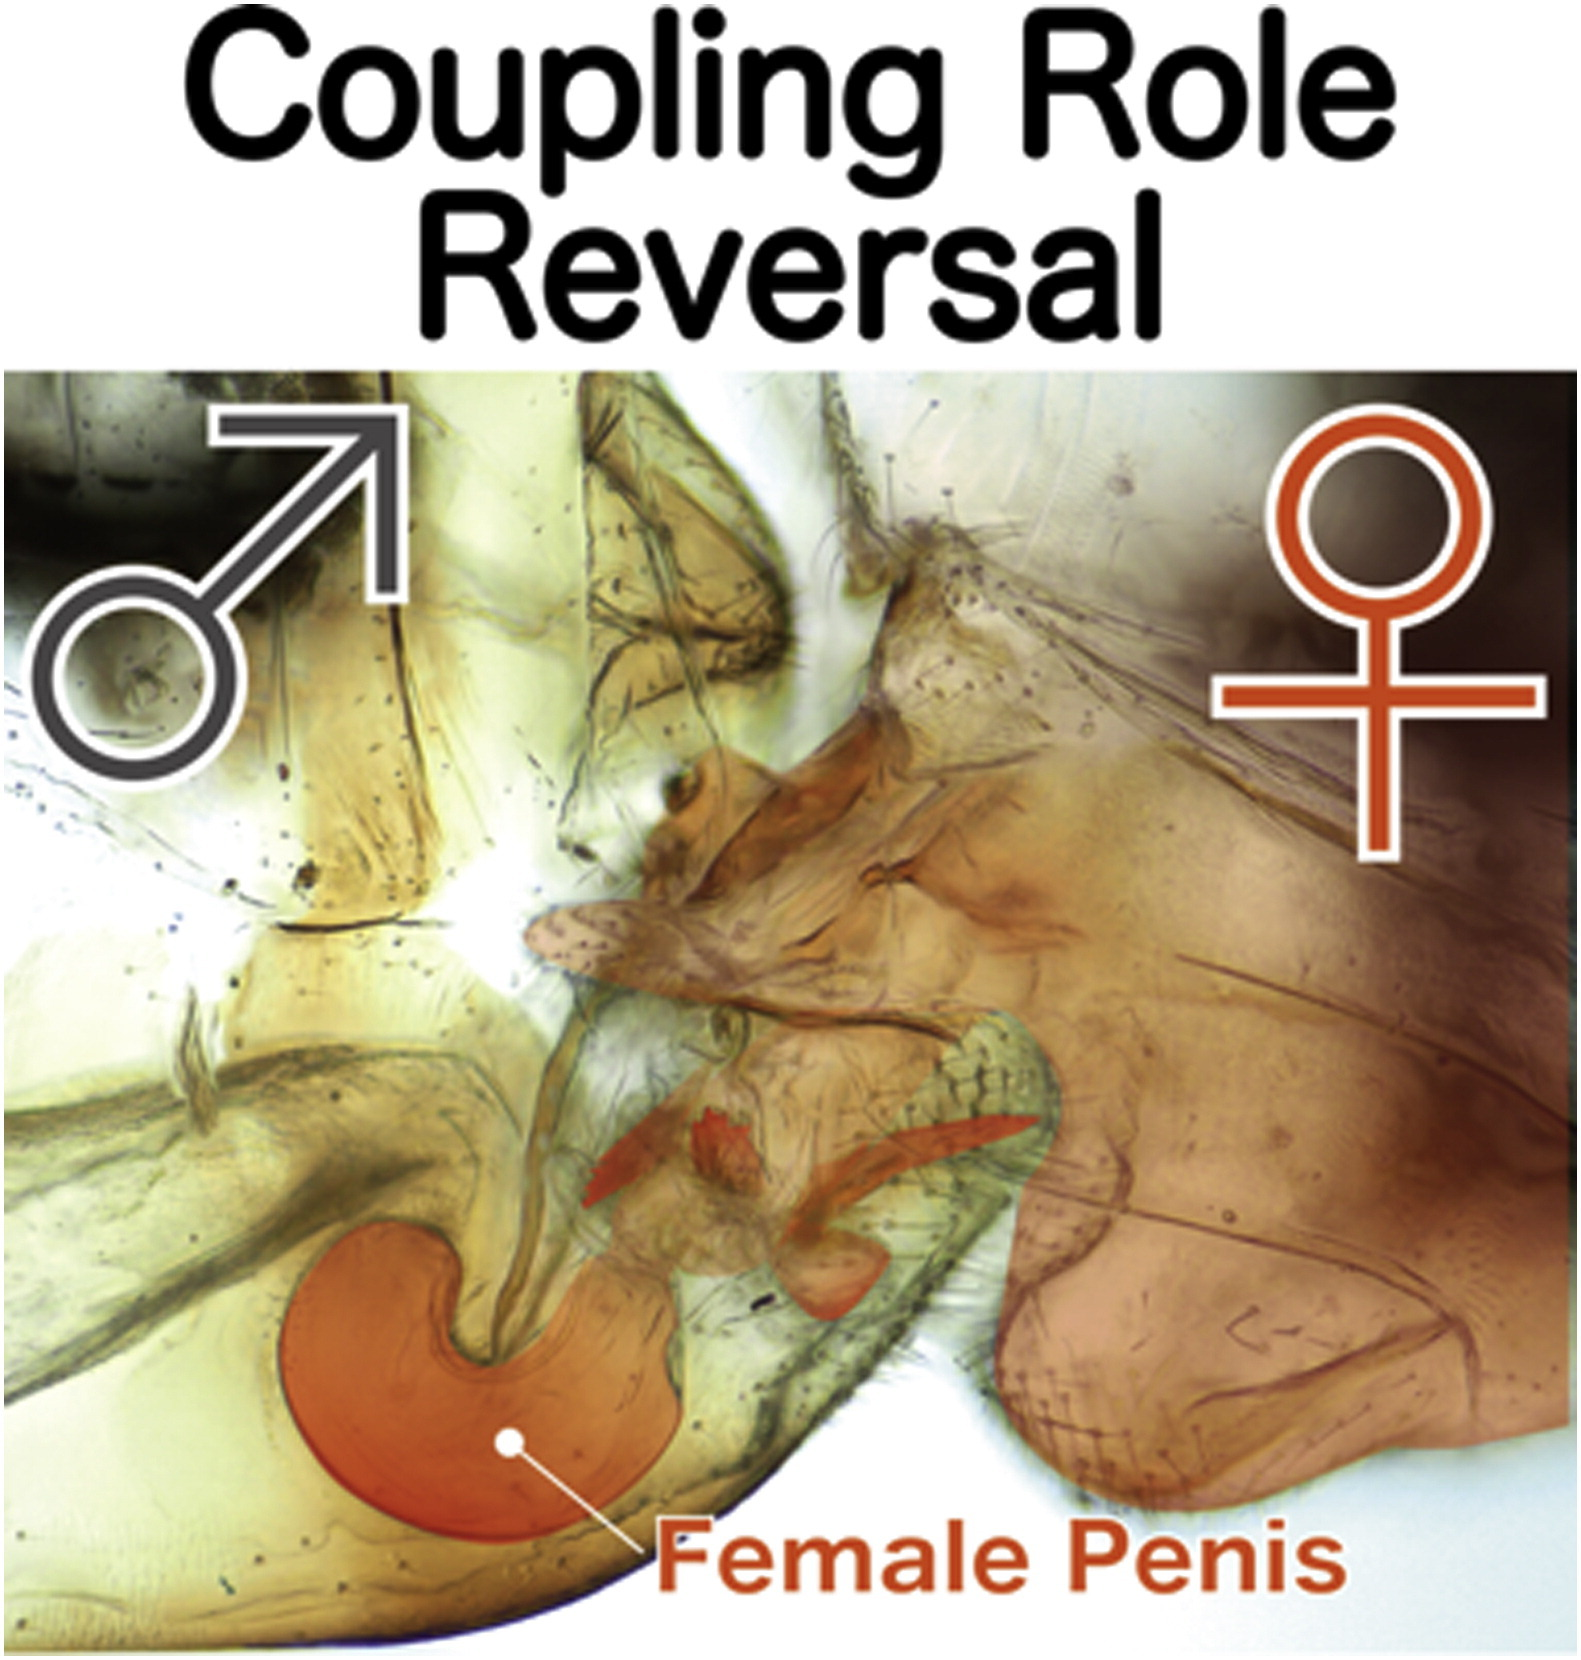 Male_penis and female_vagina